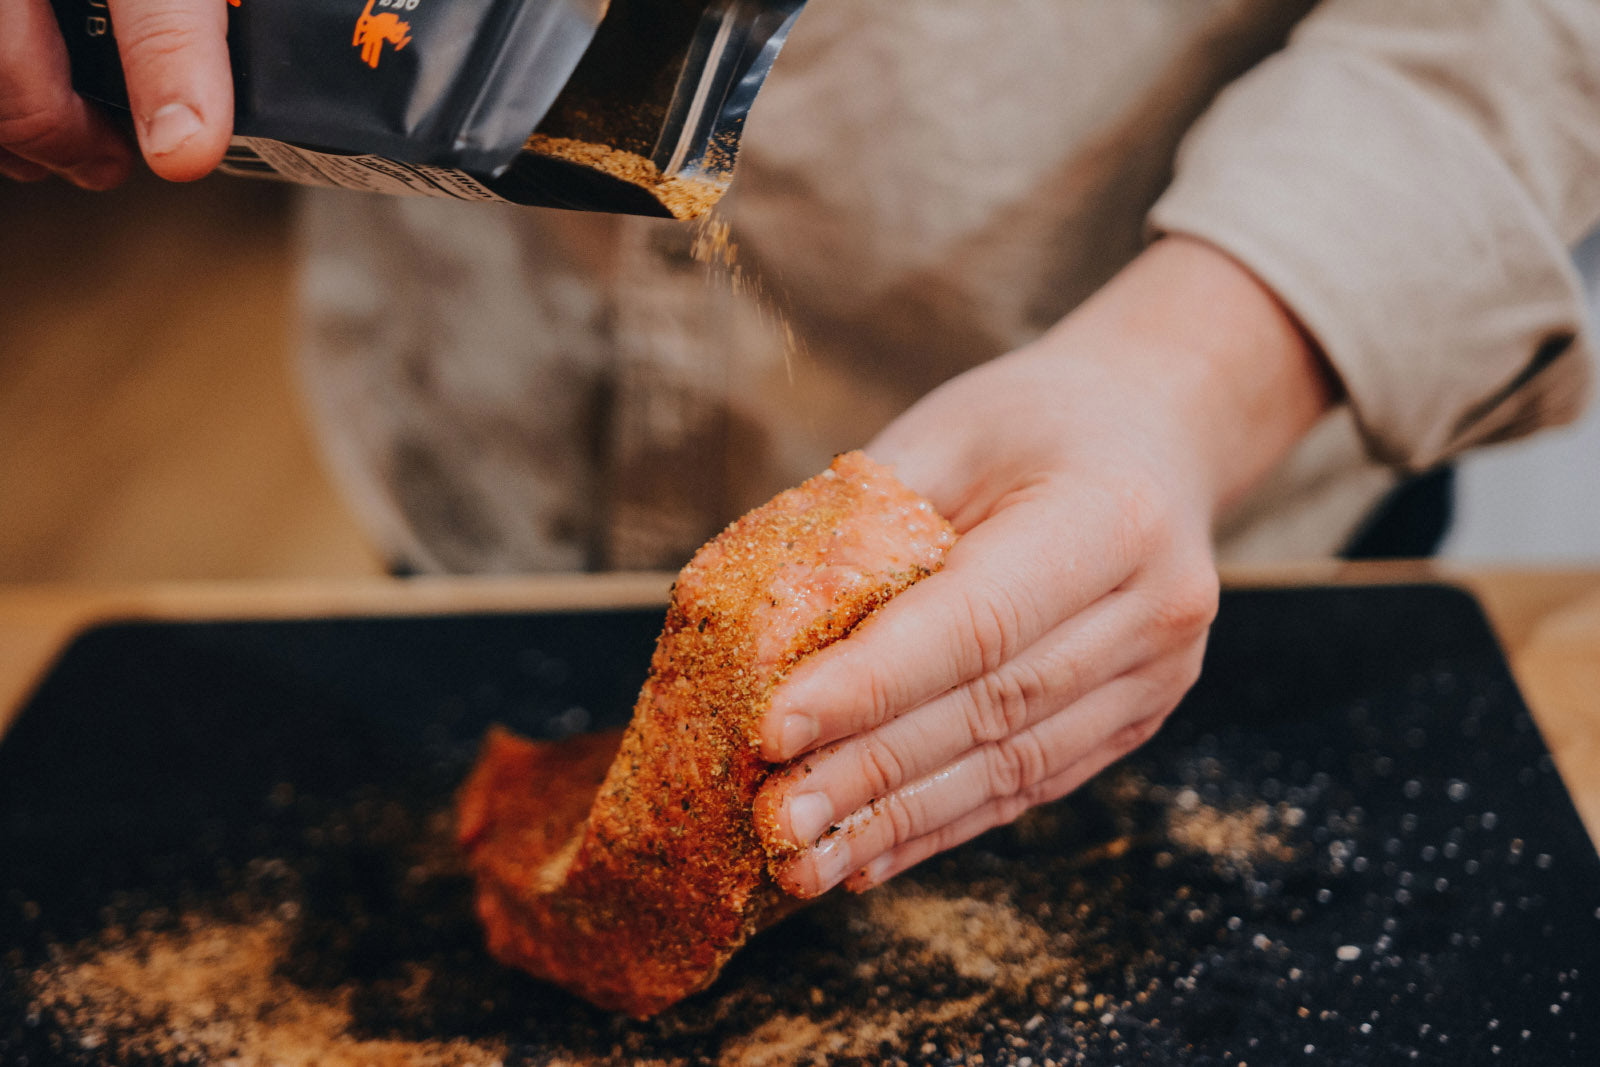 Dry rub seasoning being sprinkled onto a raw steak